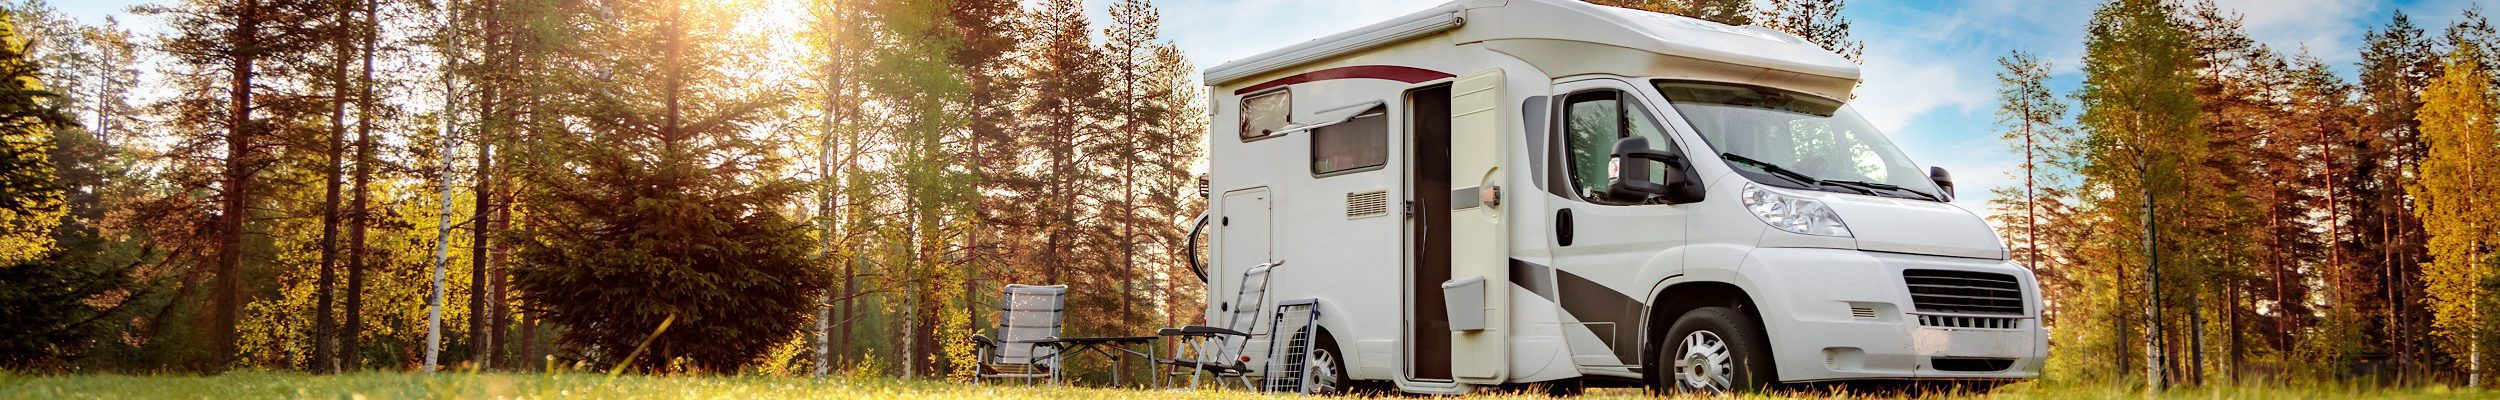 Motorhome parked on grass